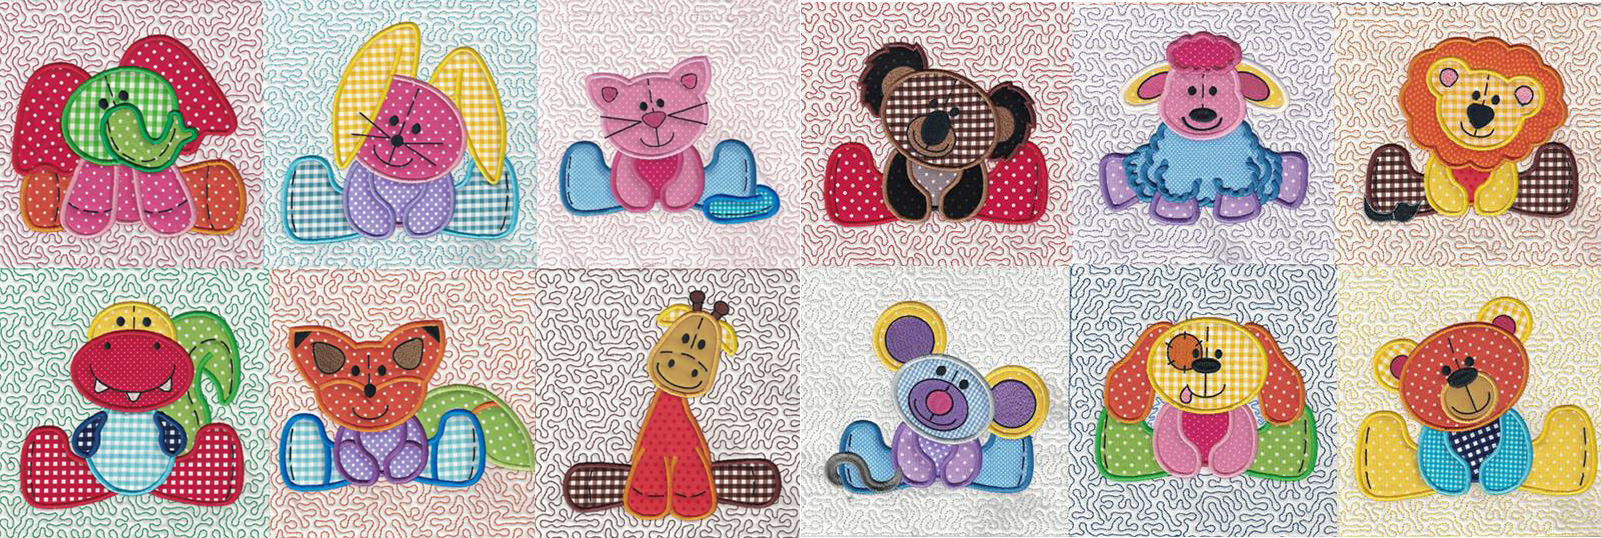 Quilting Designs By Juju Embroidery Blog